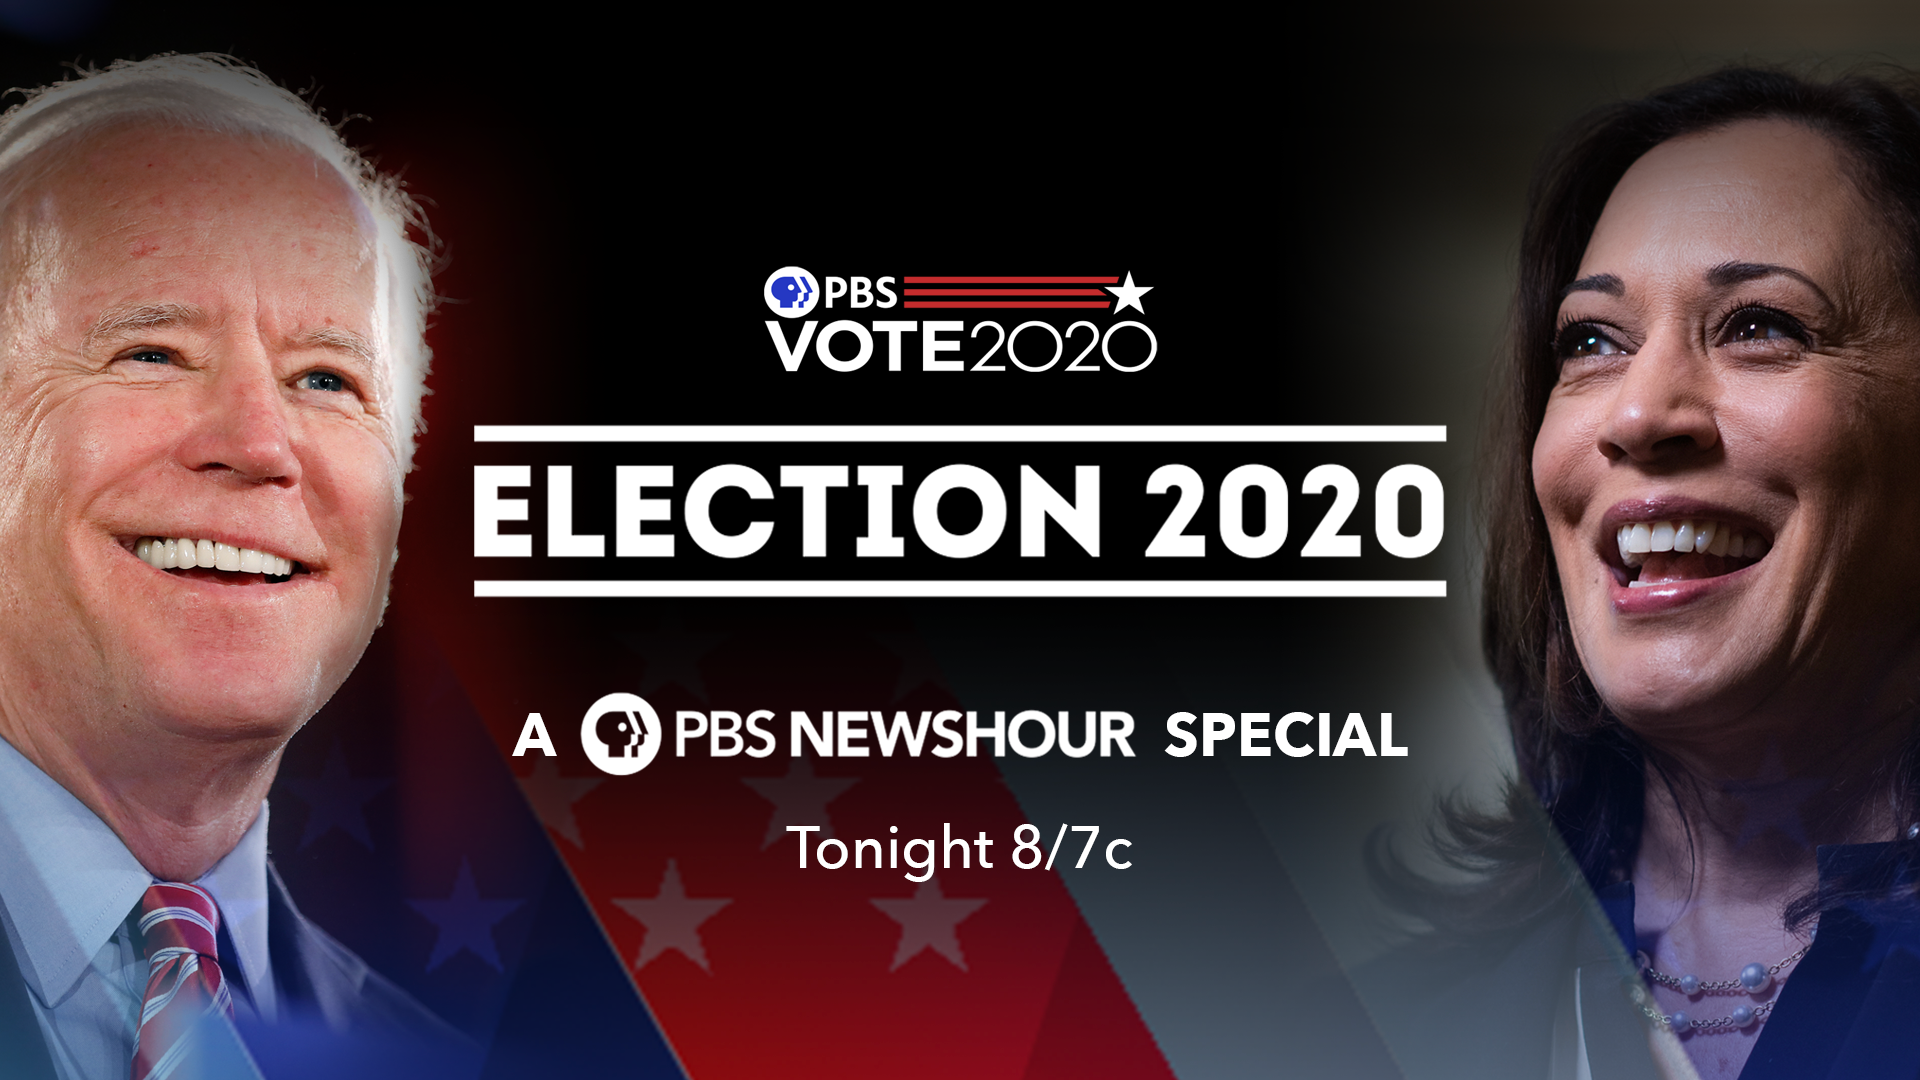 PBS Newshour Special Tune-in-Tonight